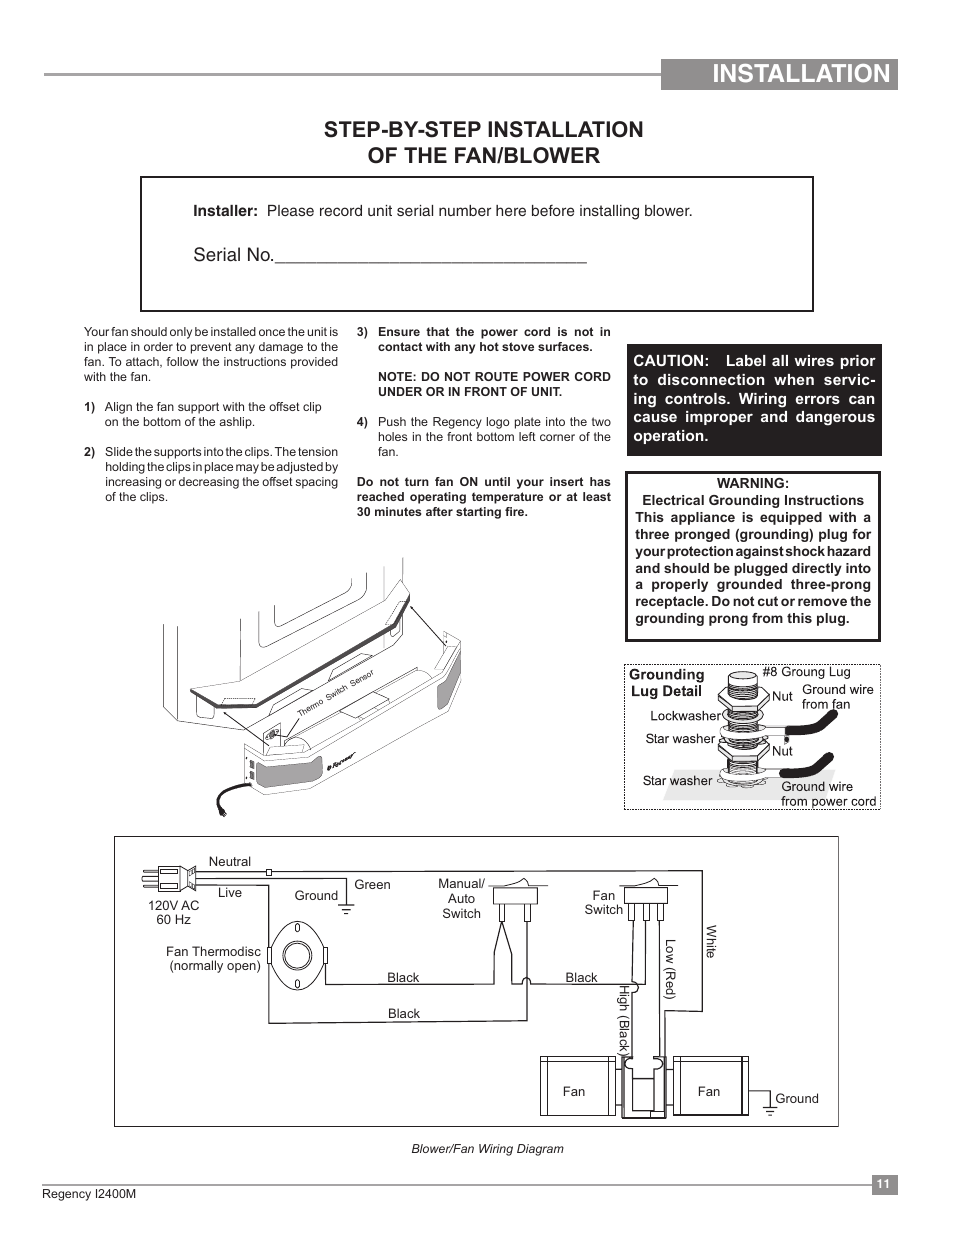 wiring diagram for wood stove blower installation  step by step installation of the fan blower  serial  installation of the fan blower